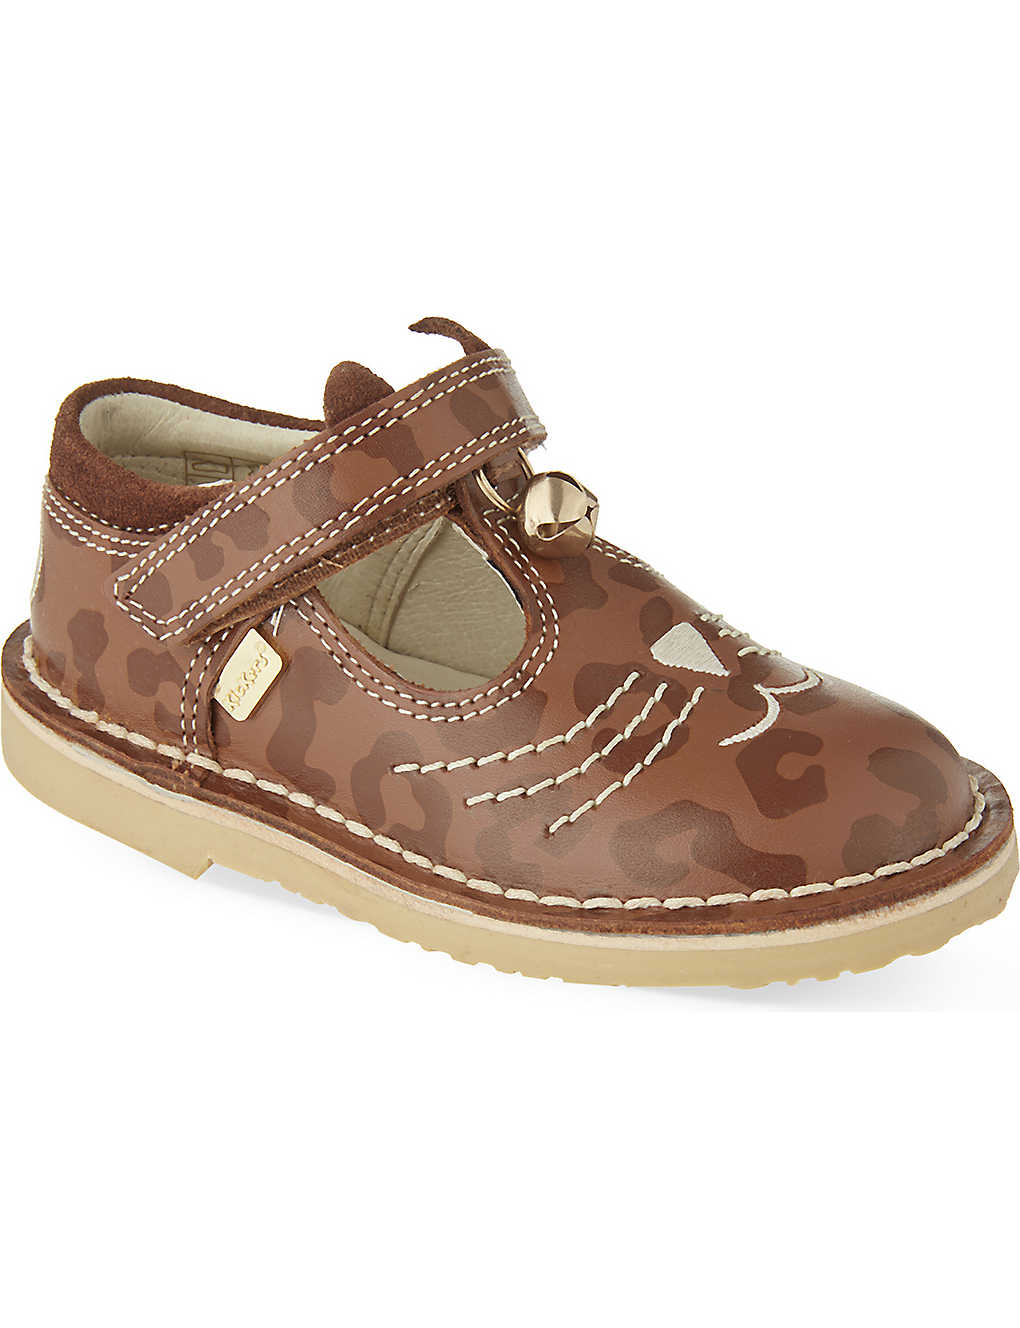 229e9806fc6da9 KICKERS - Adlar kit-t leather shoes 2-7 years | Selfridges.com